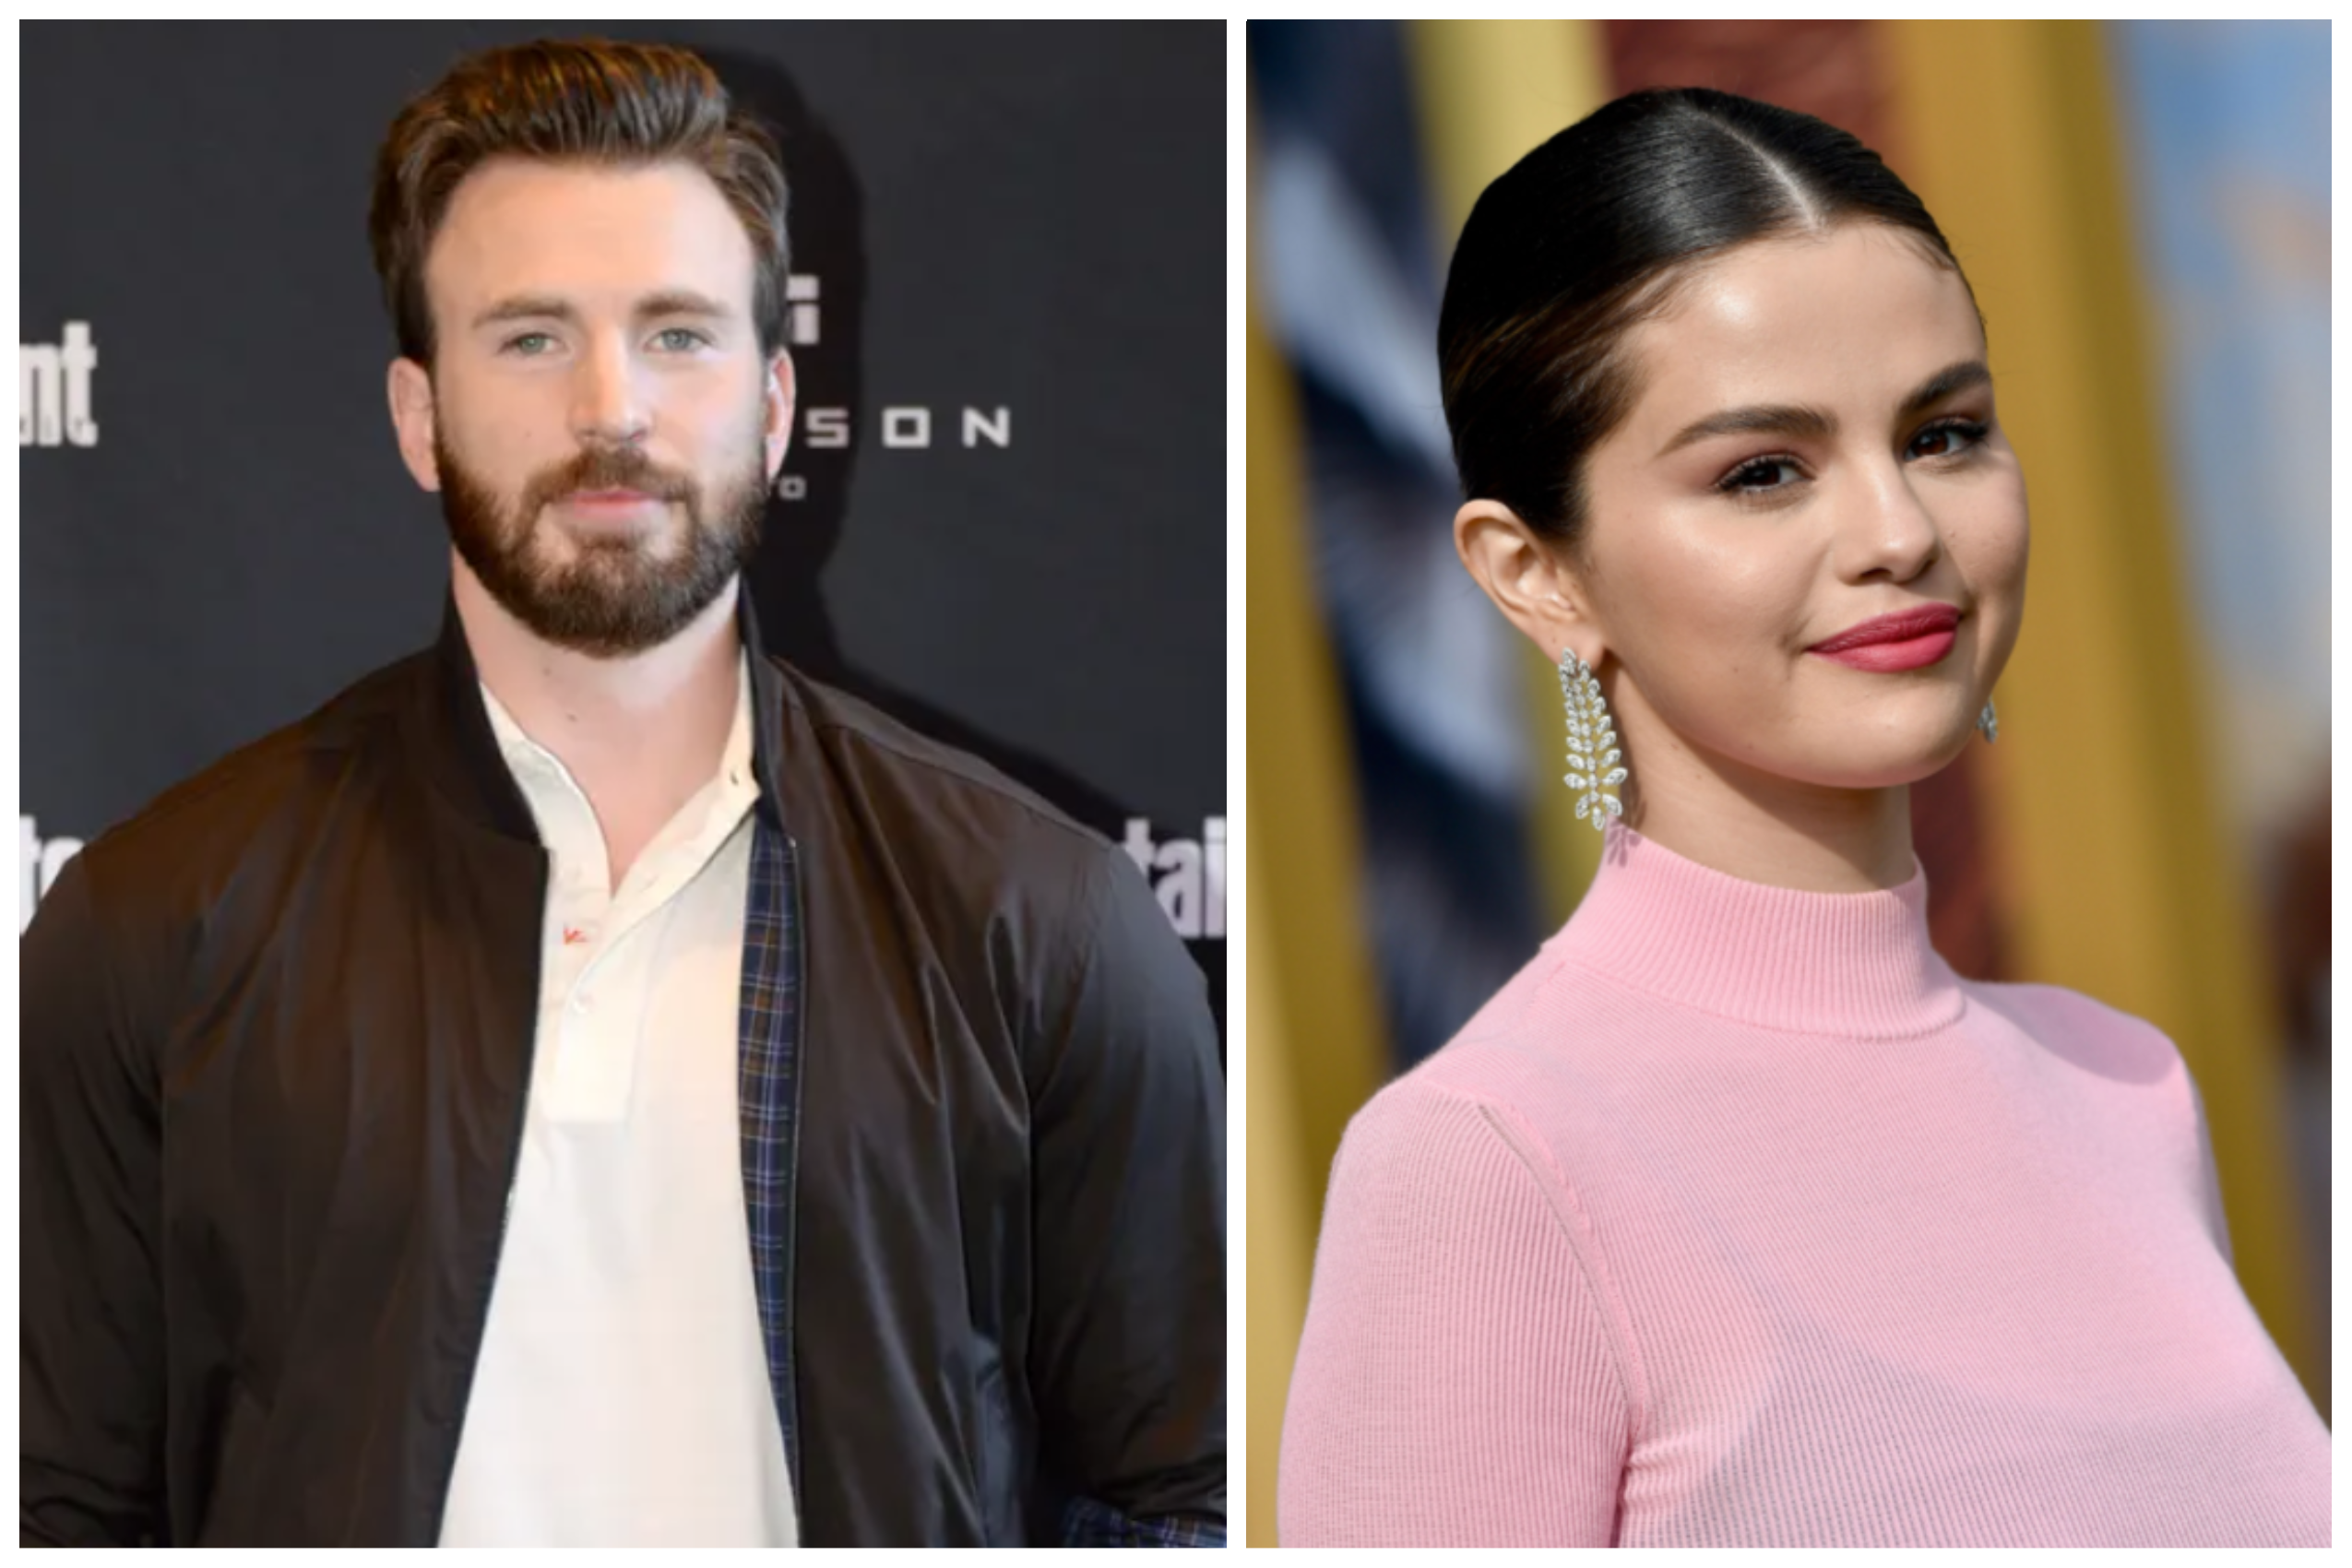 Are Chris Evans and Selena Gomez Dating